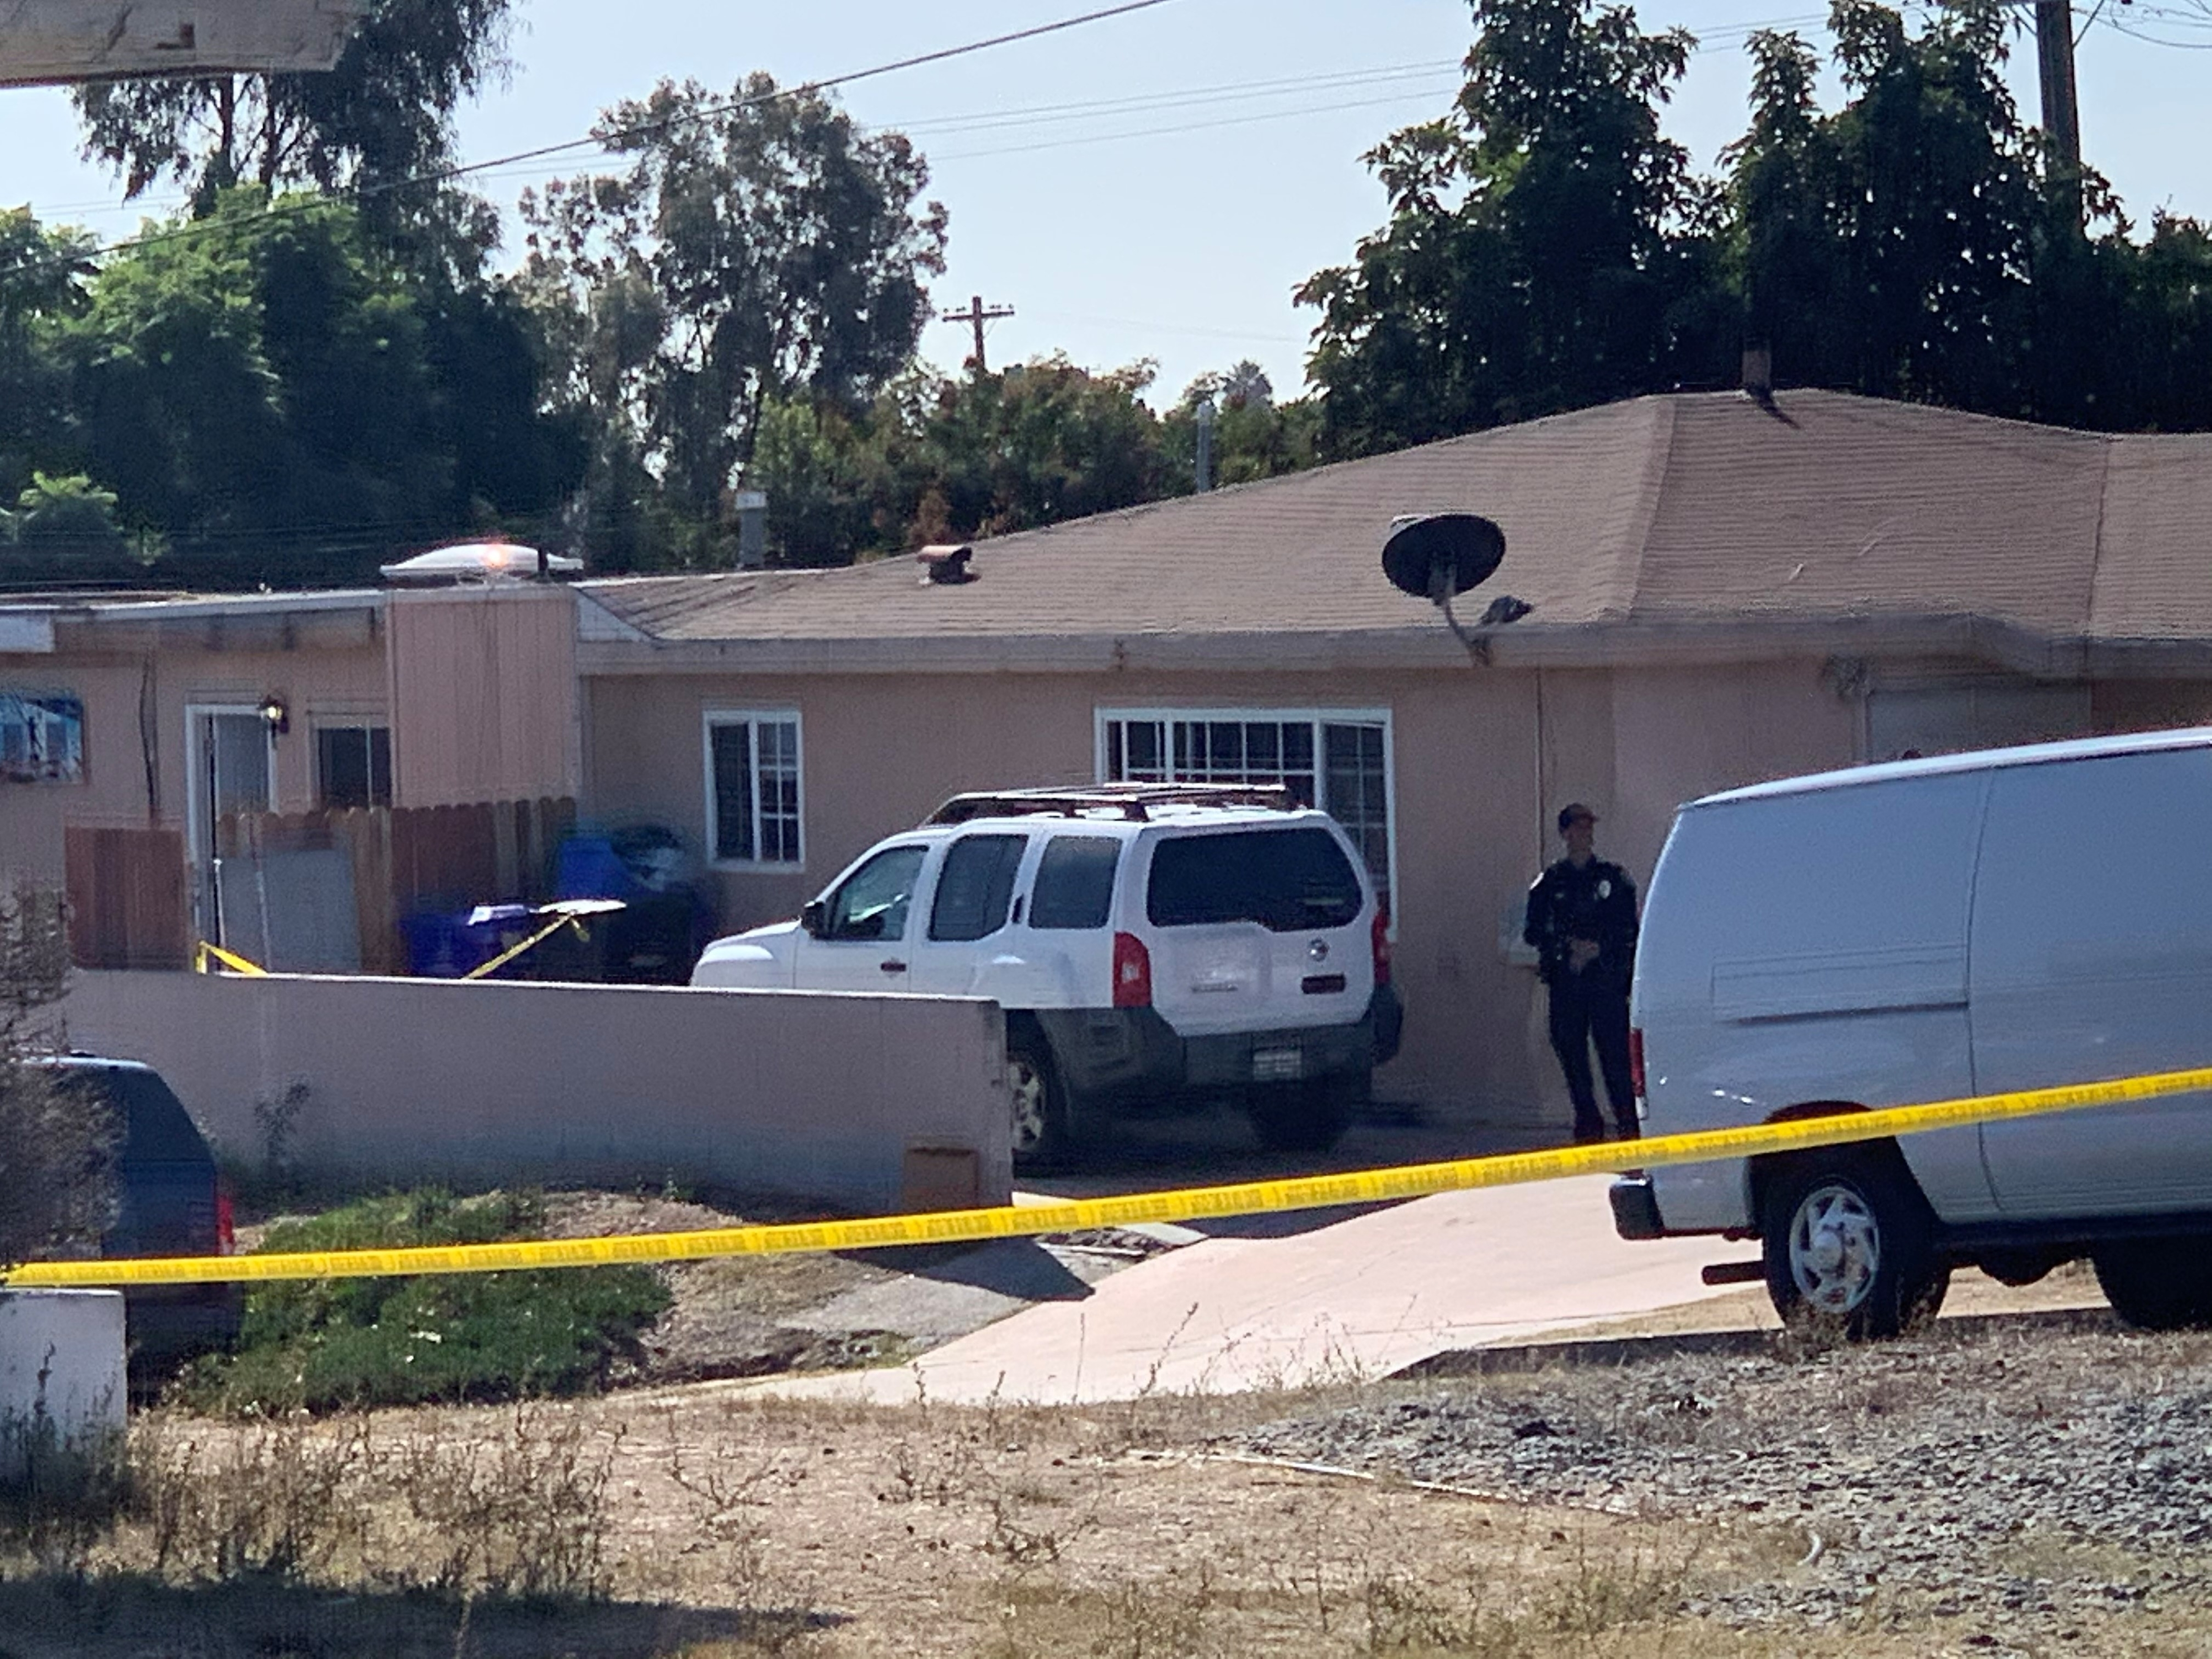 5 dead, including three boys under 10, after shooting at San Diego home